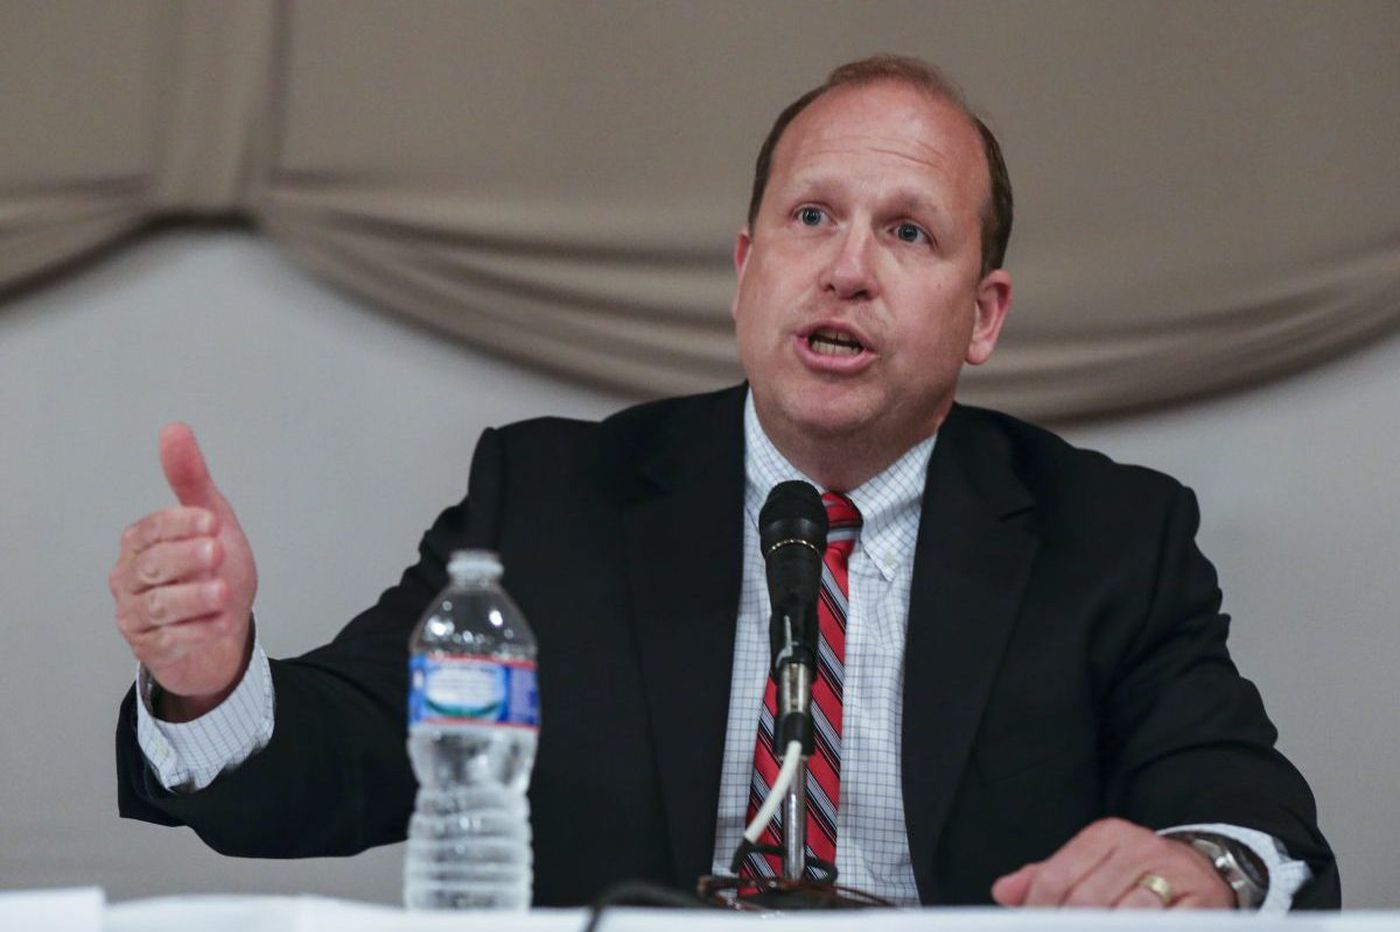 Sen. Daylin Leach: 'I am taking a step back' from congressional campaign amid misconduct allegations